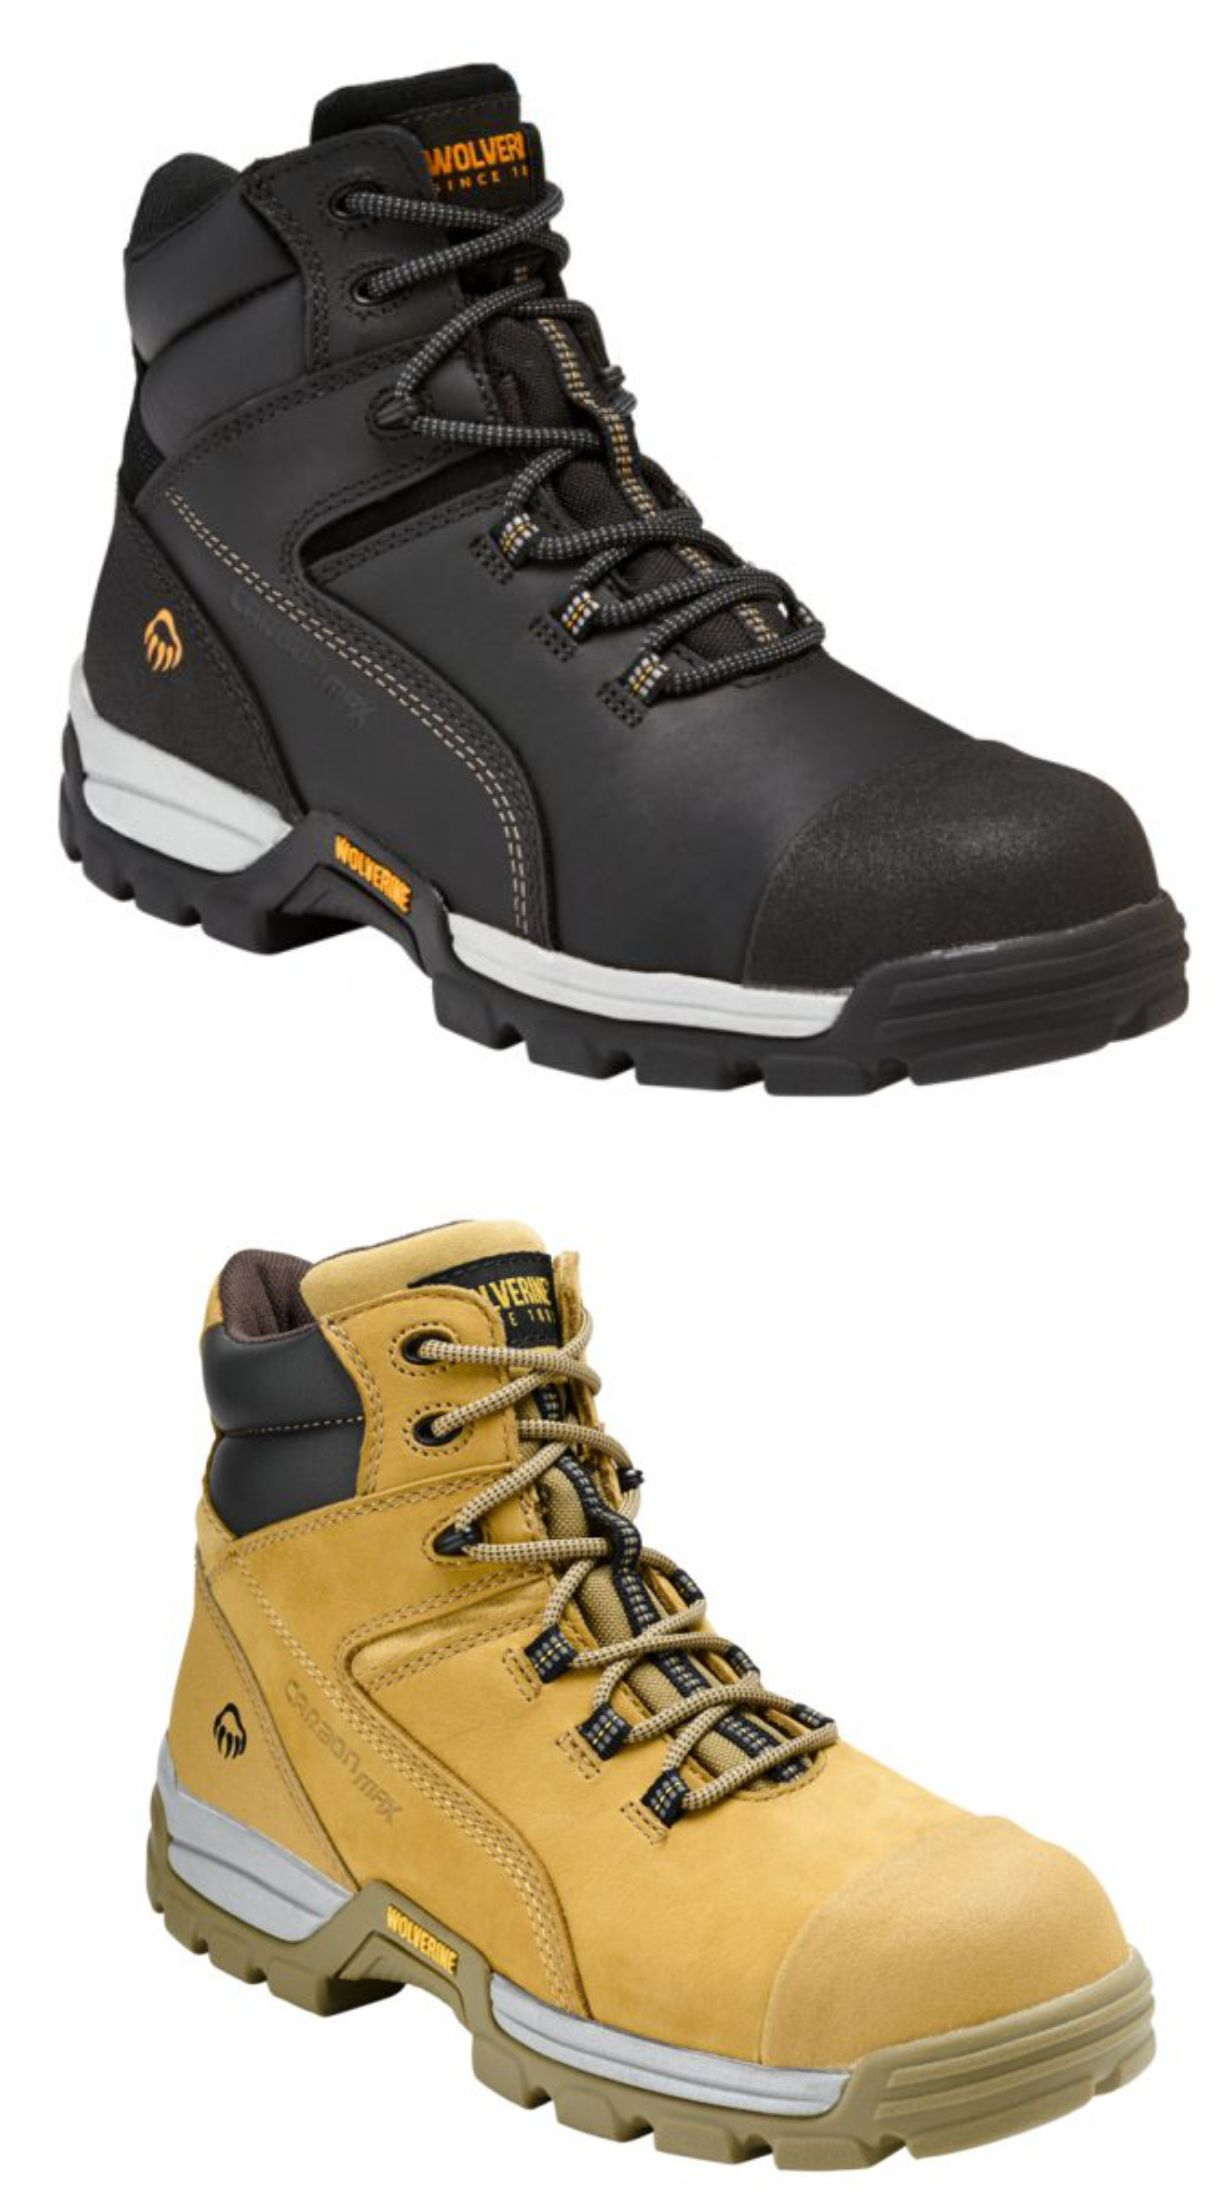 57c633a24cc Wolverine Tarmac 6 inch boot - $165.00 : TAS Workwear Group, Order ...